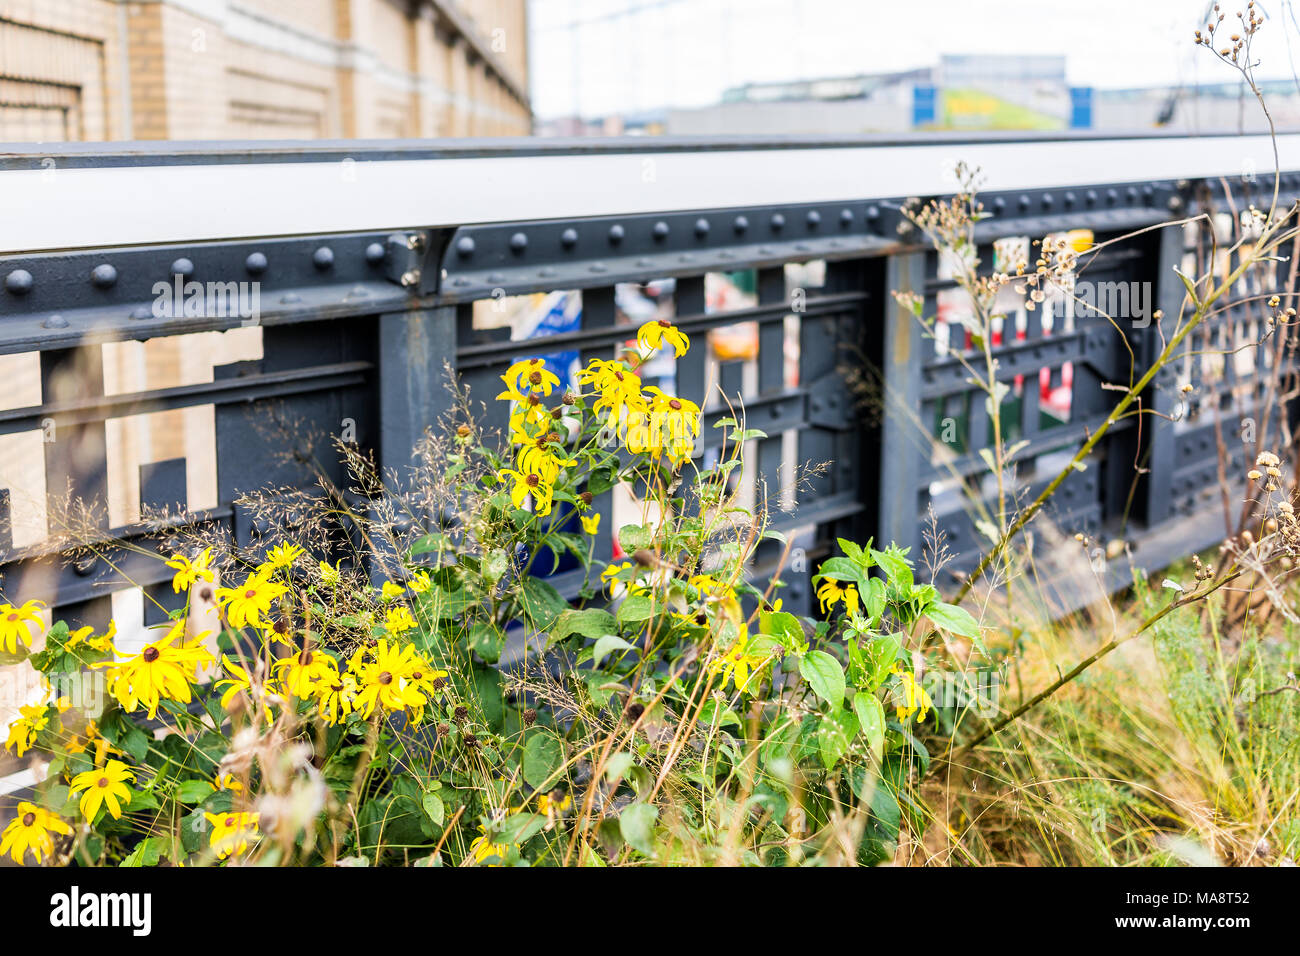 Modern New York City NYC In Chelsea West Side By Hudson Yards, With High  Line Highline Urban Modern Park Garden, Yellow Landscaped Daisy Flowers